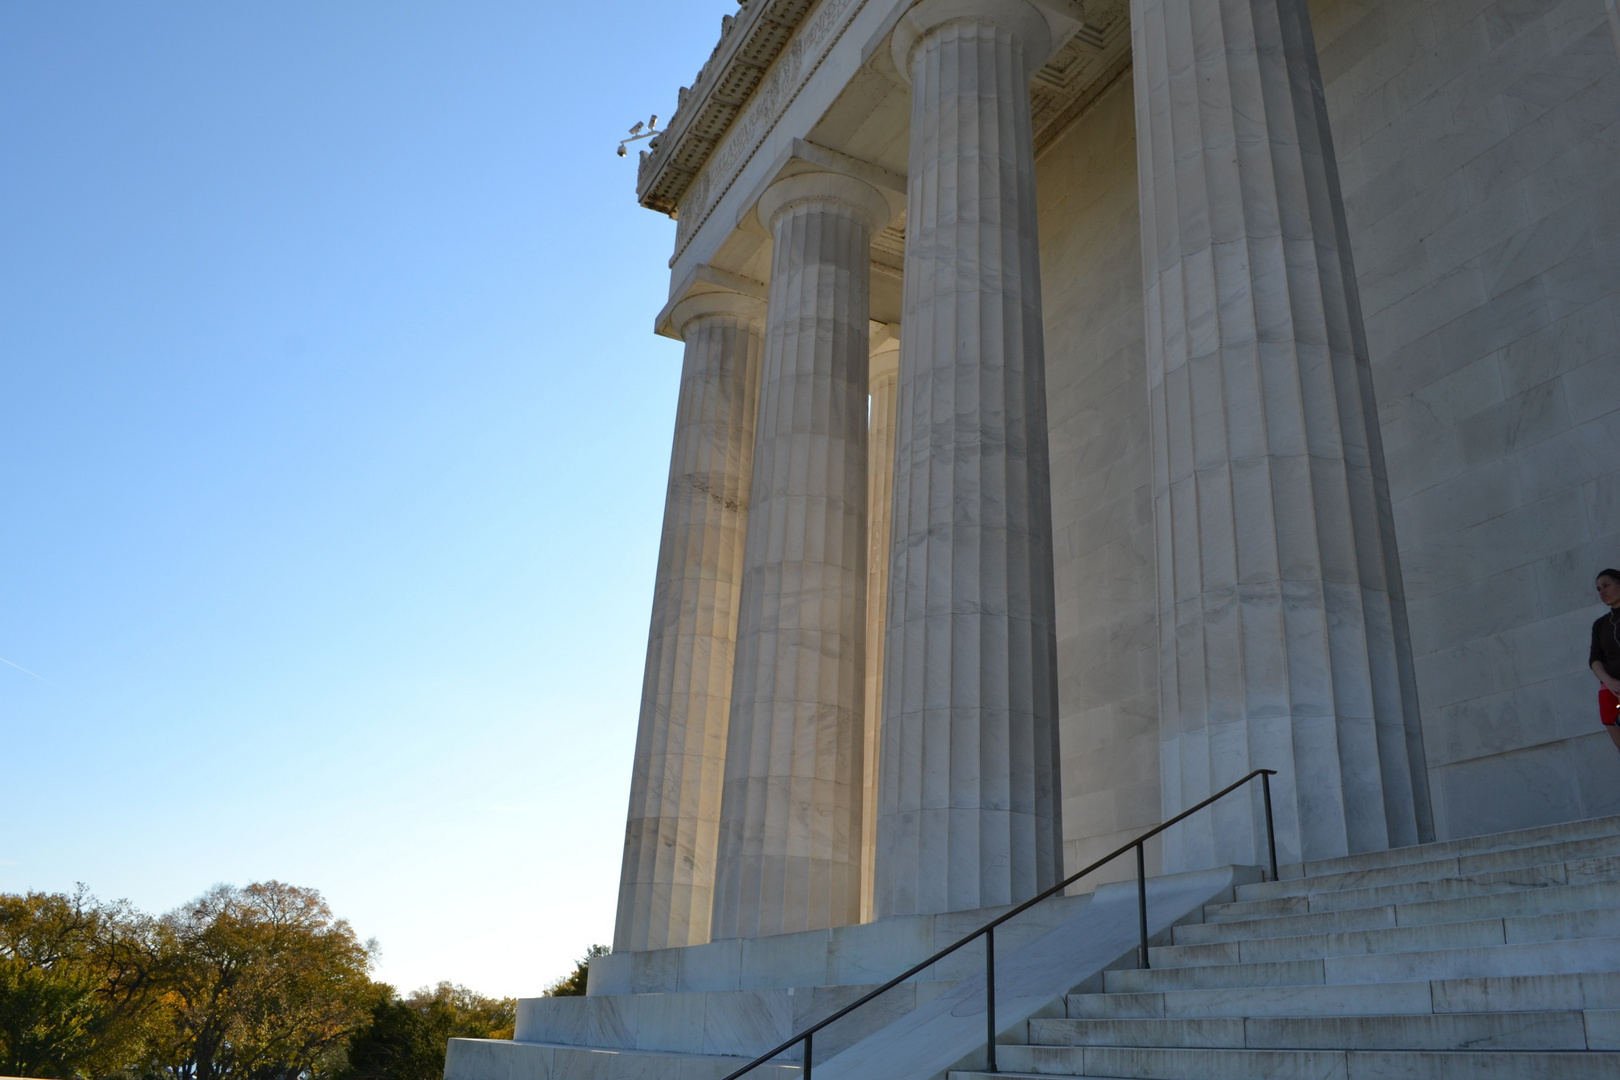 The Abraham Lincoln Memorial in Washington, D.C.